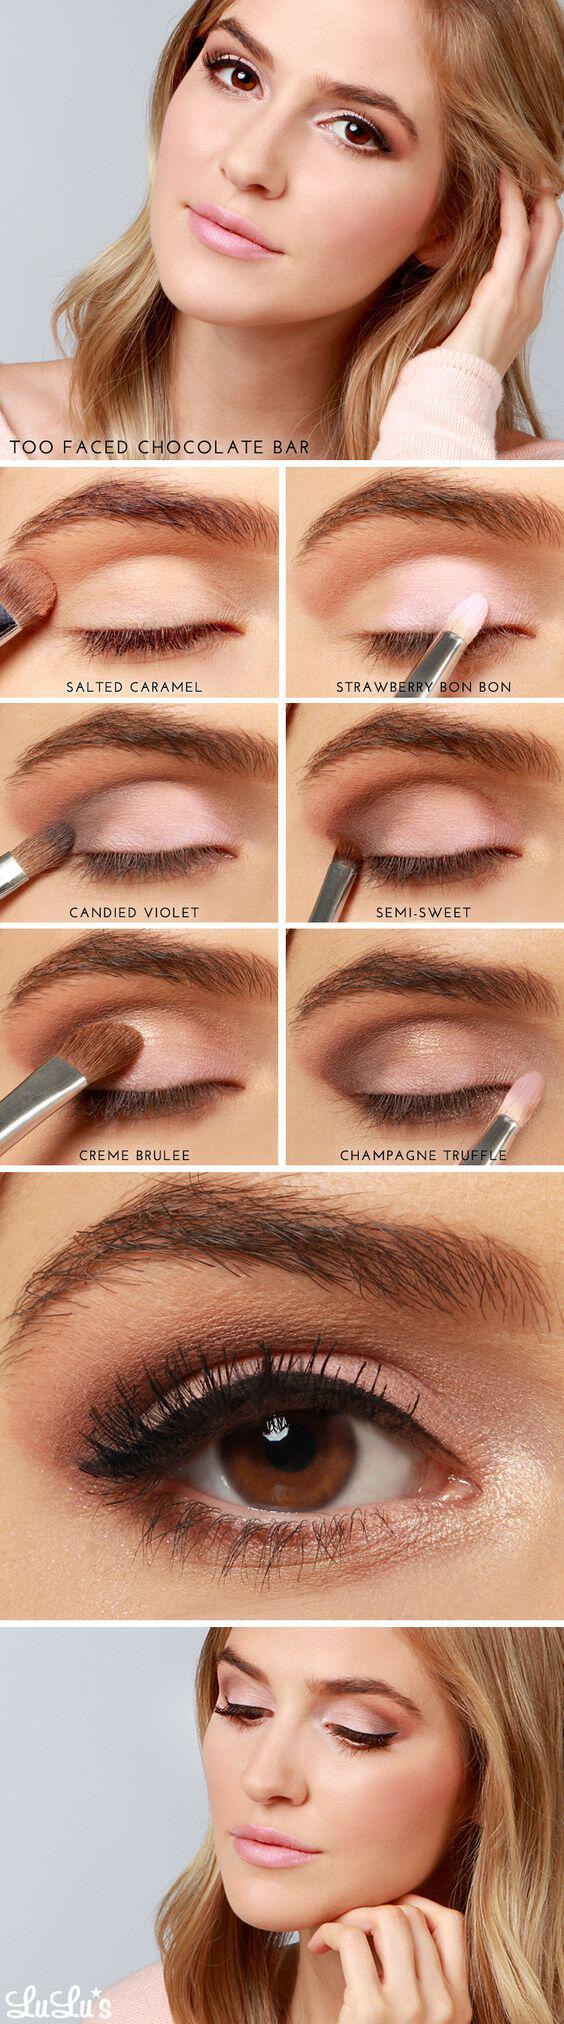 15 ideas for natural makeup for work - 15 ideas for natural makeup for work